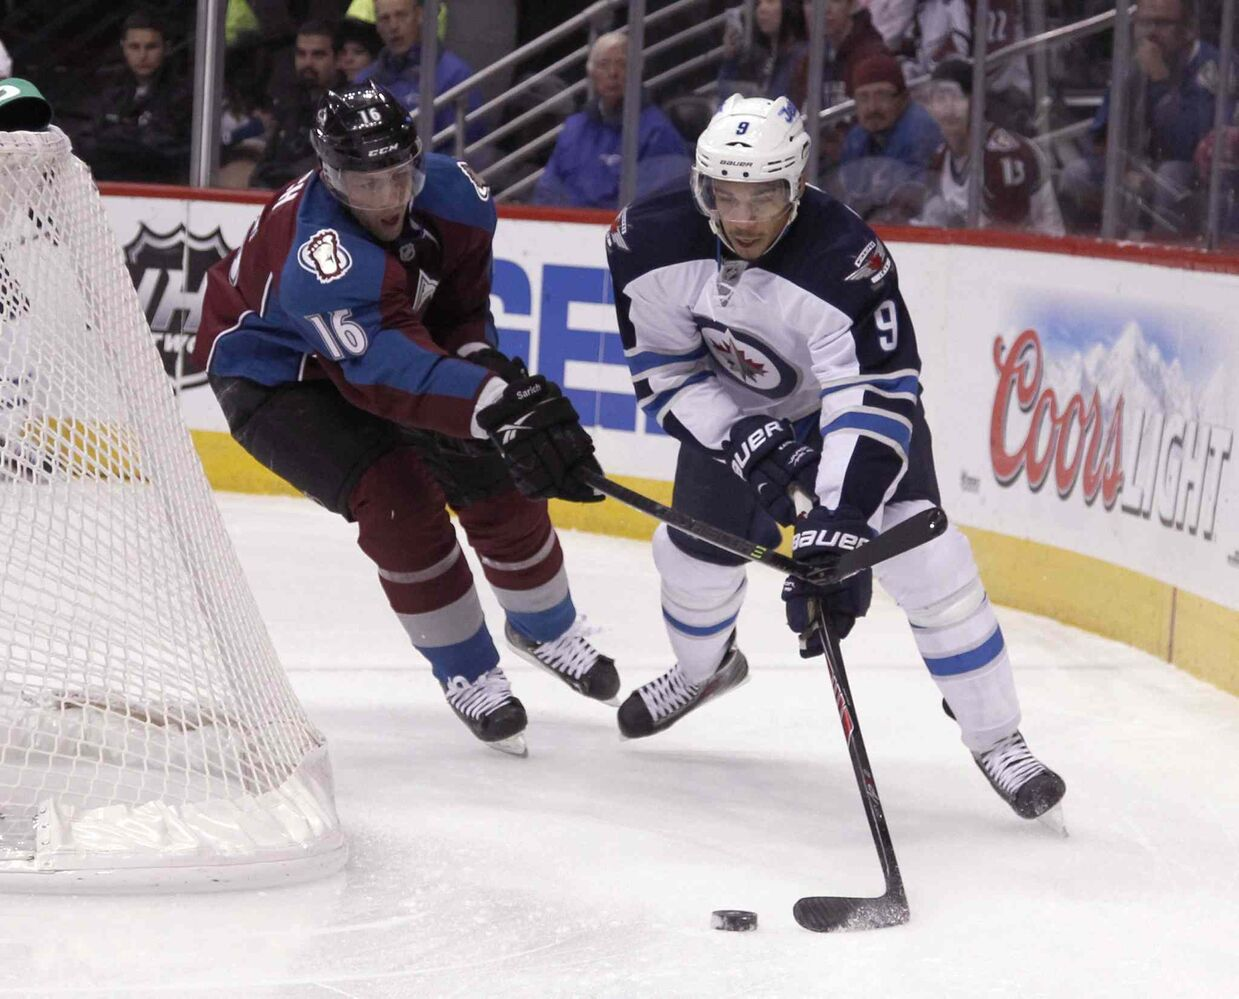 Evander Kane tries a wraparound as Avalanche defenceman Cory Sarich gives chase in the first period. (David Zalubowski / The Associated Press)